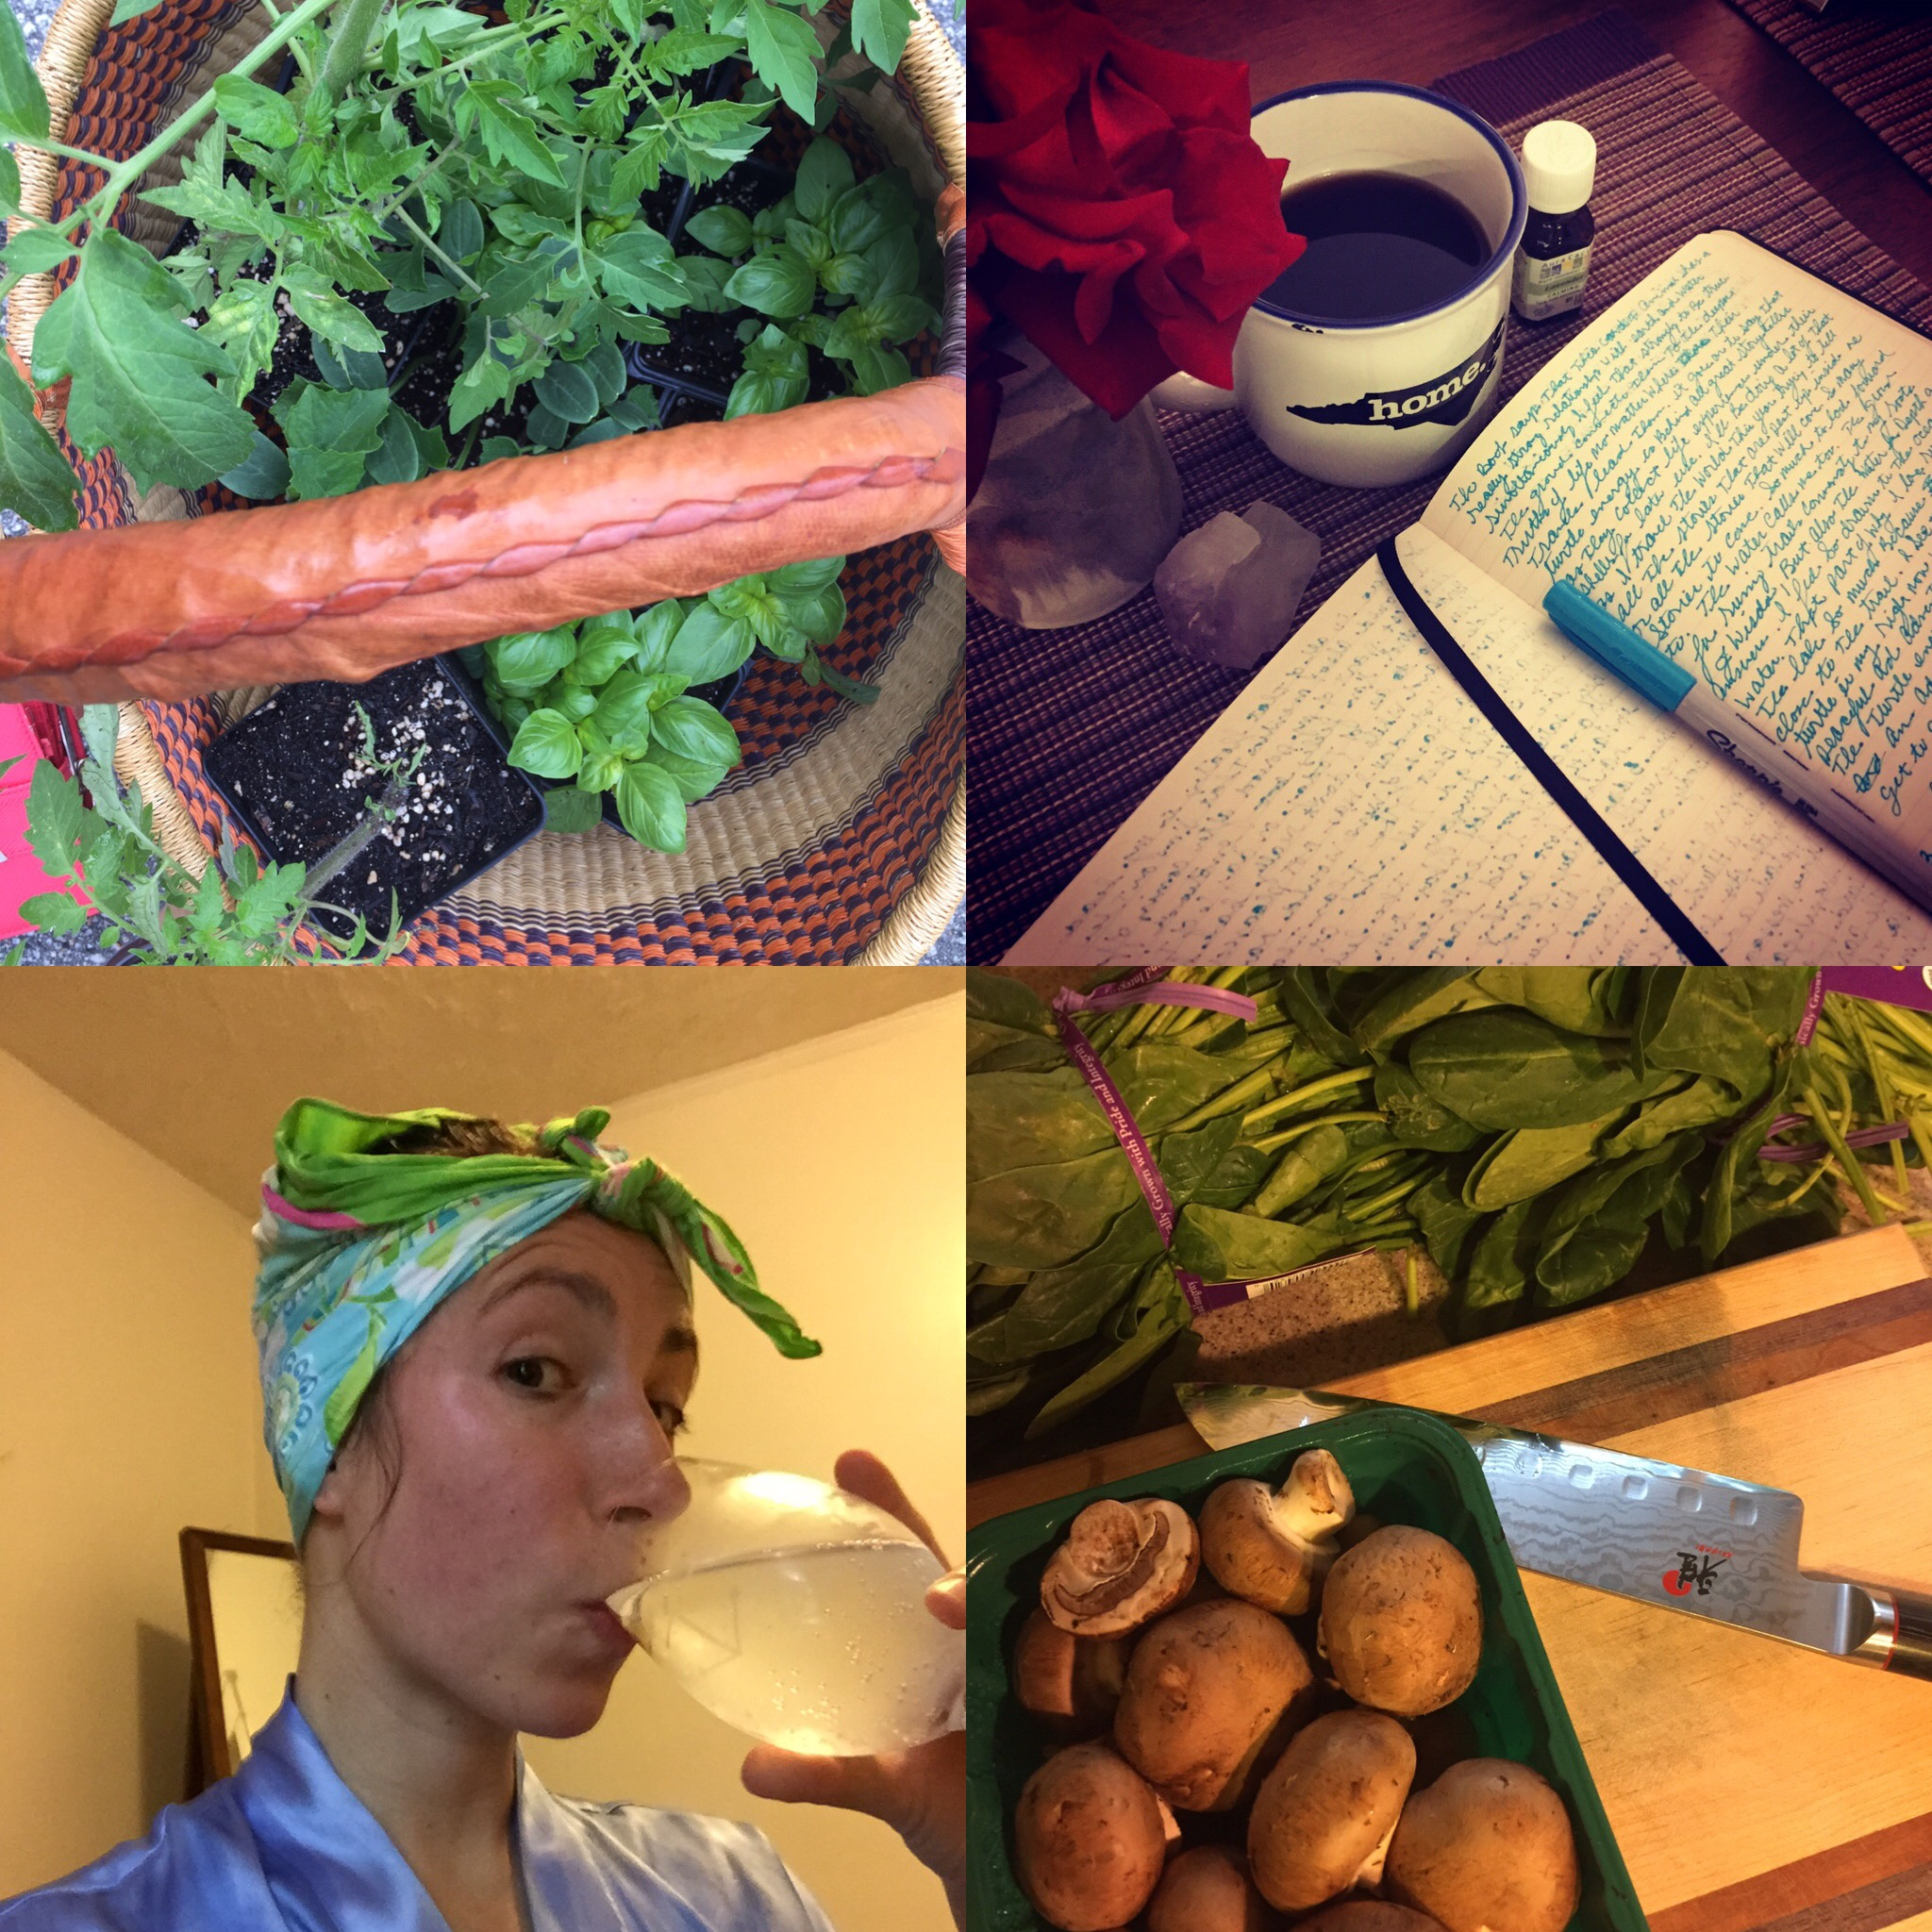 Whole 30 coping tools, sparkling coconut water, trips to the farmers market, writing with coffee and cooking at home.